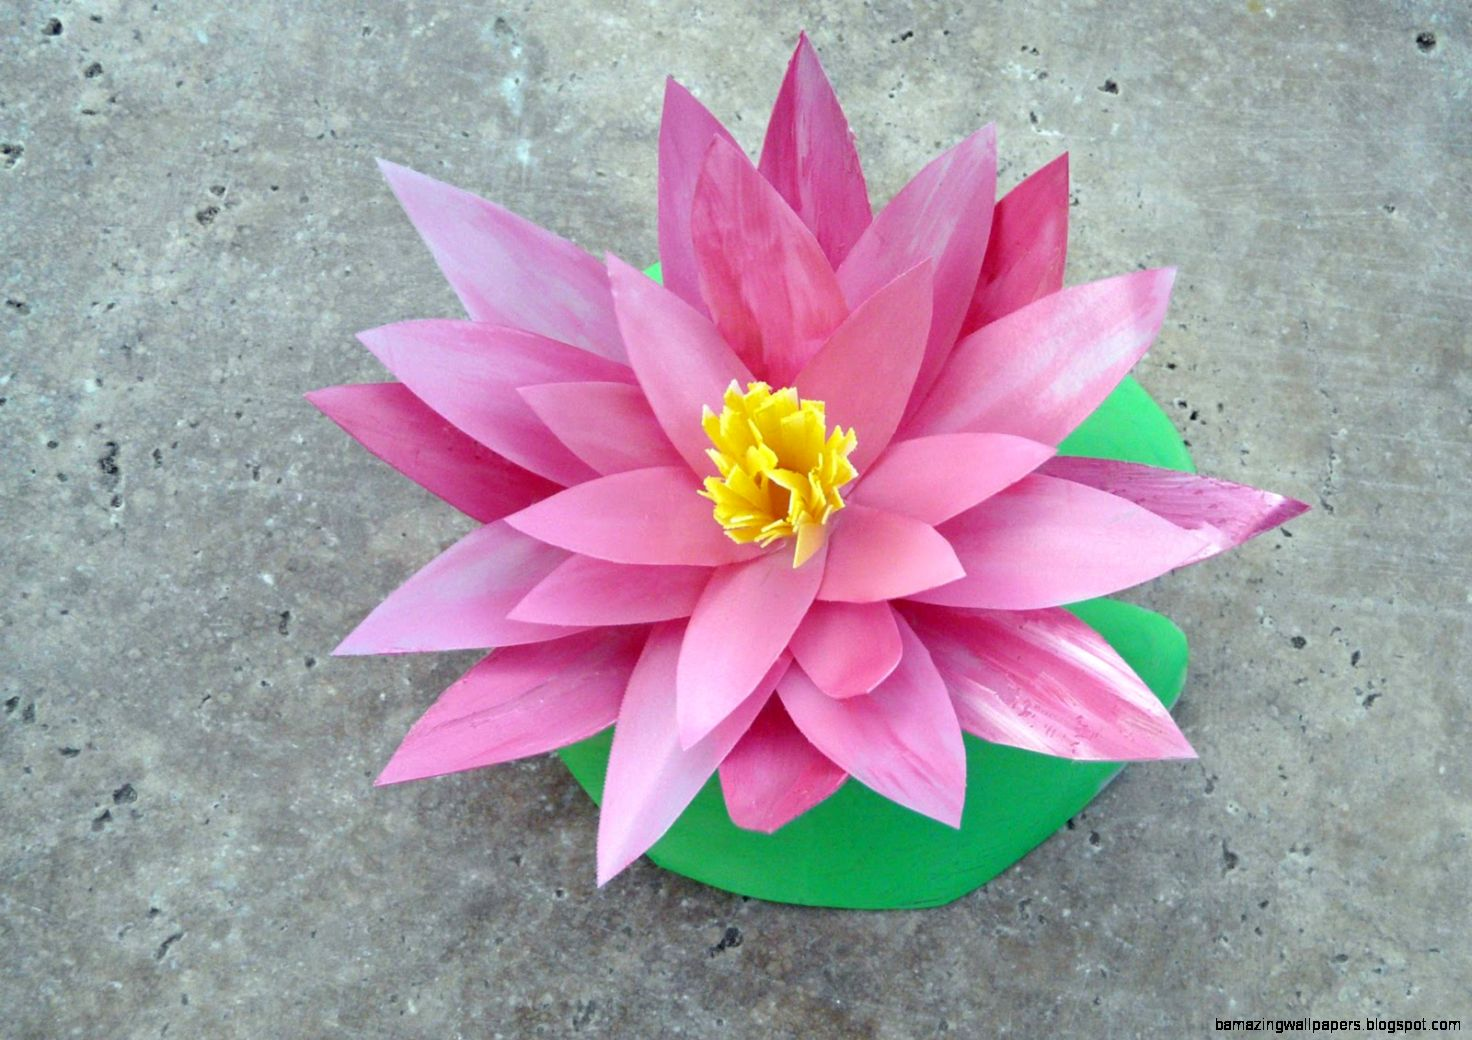 Lily pad flower painting amazing wallpapers view original size izmirmasajfo